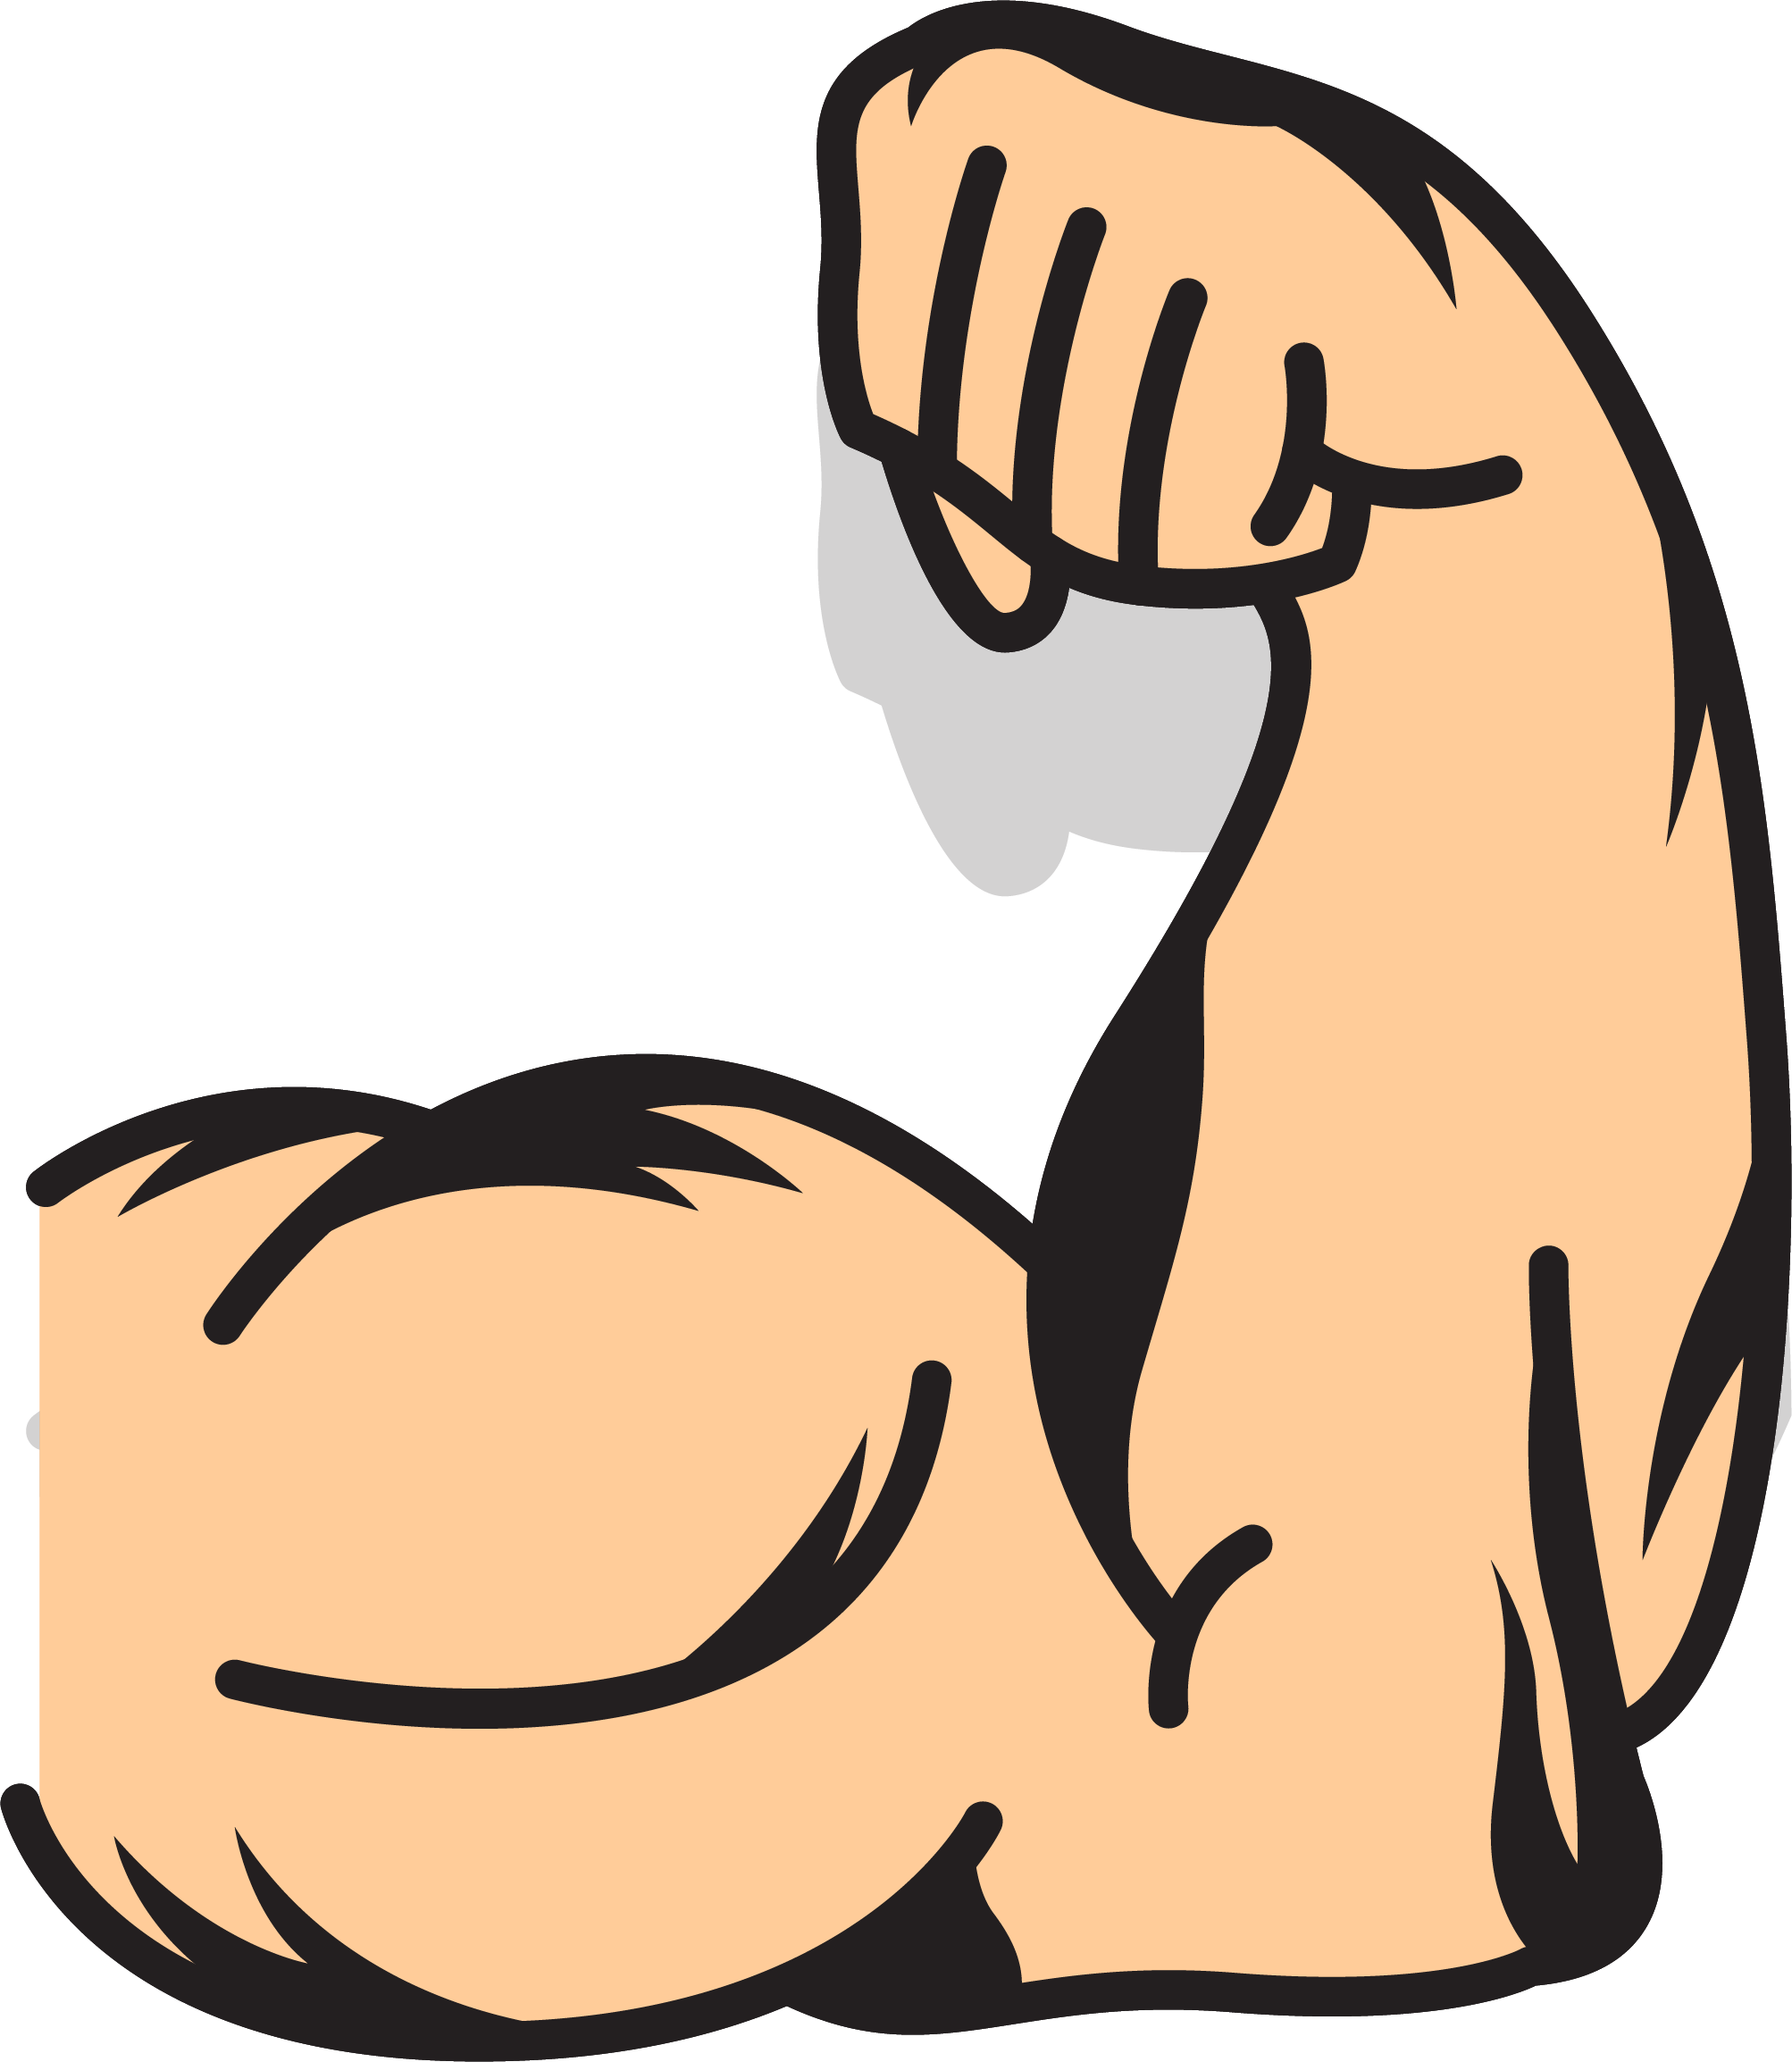 Muscle arms png. Clip art strong transprent